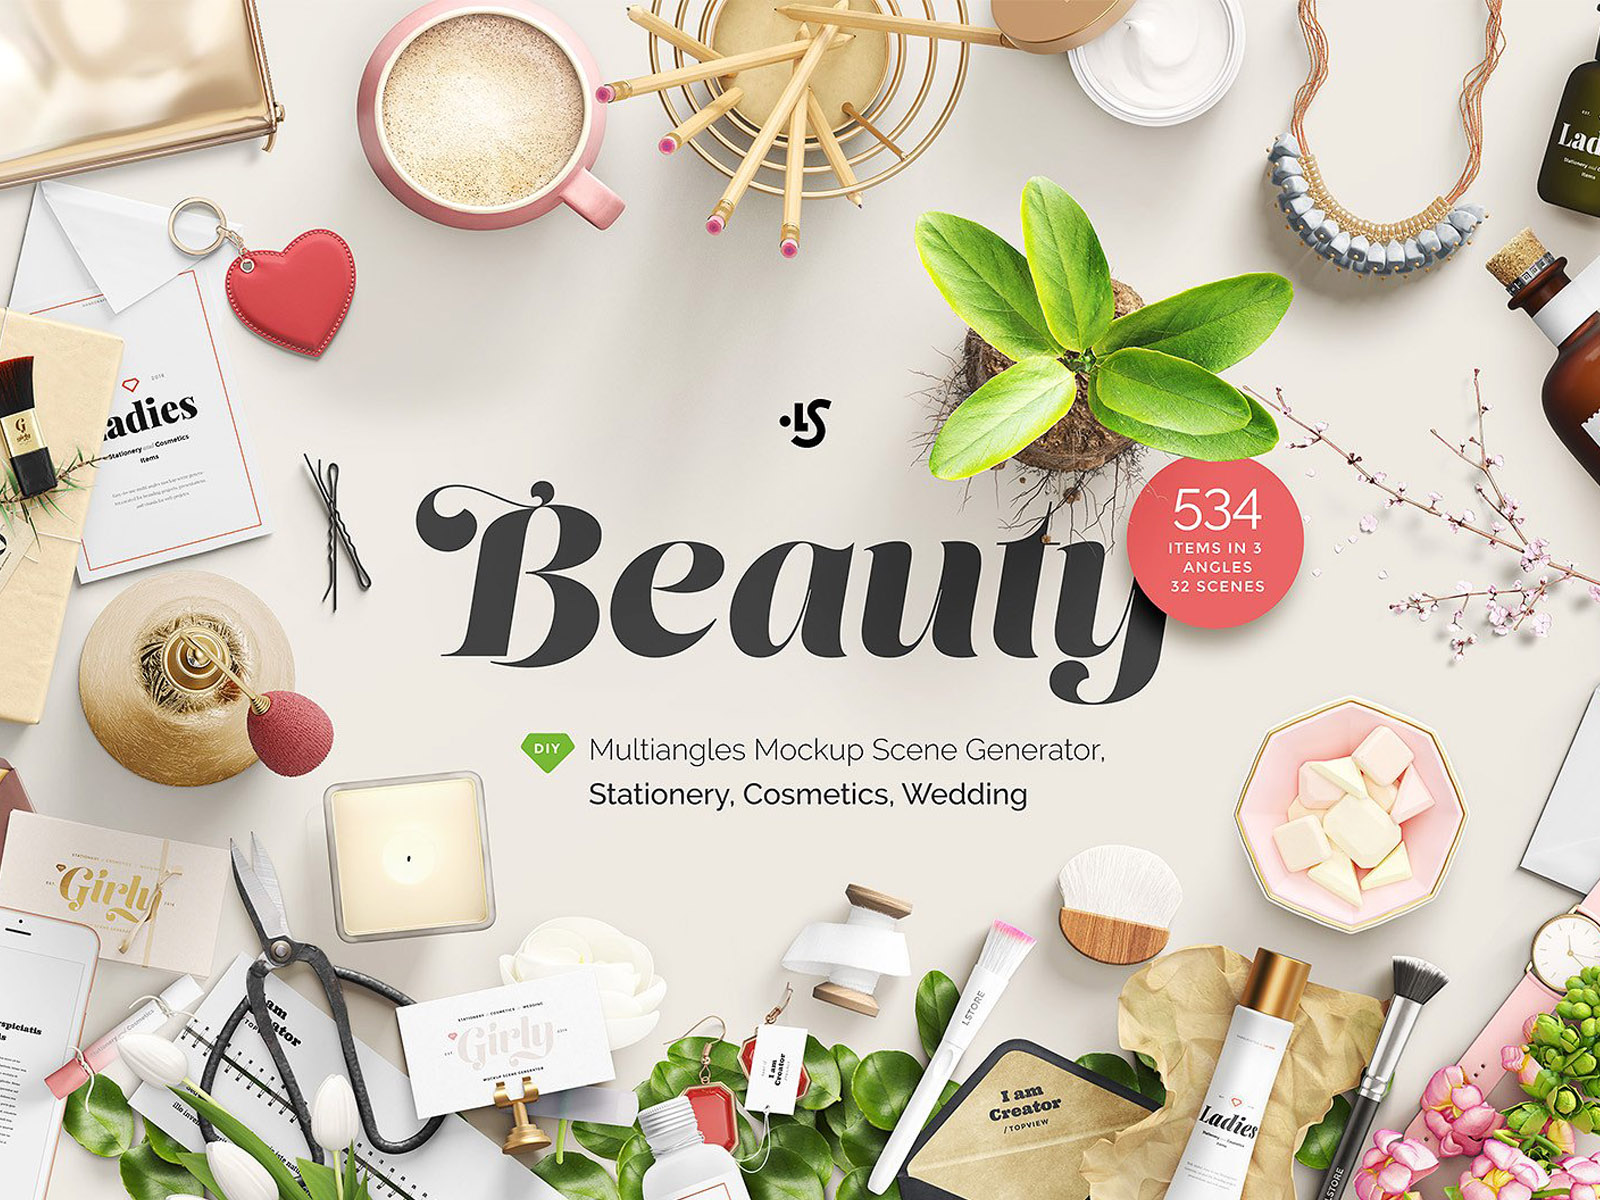 Multiangle mockup scene generator: cosmetics, stationary, wedding